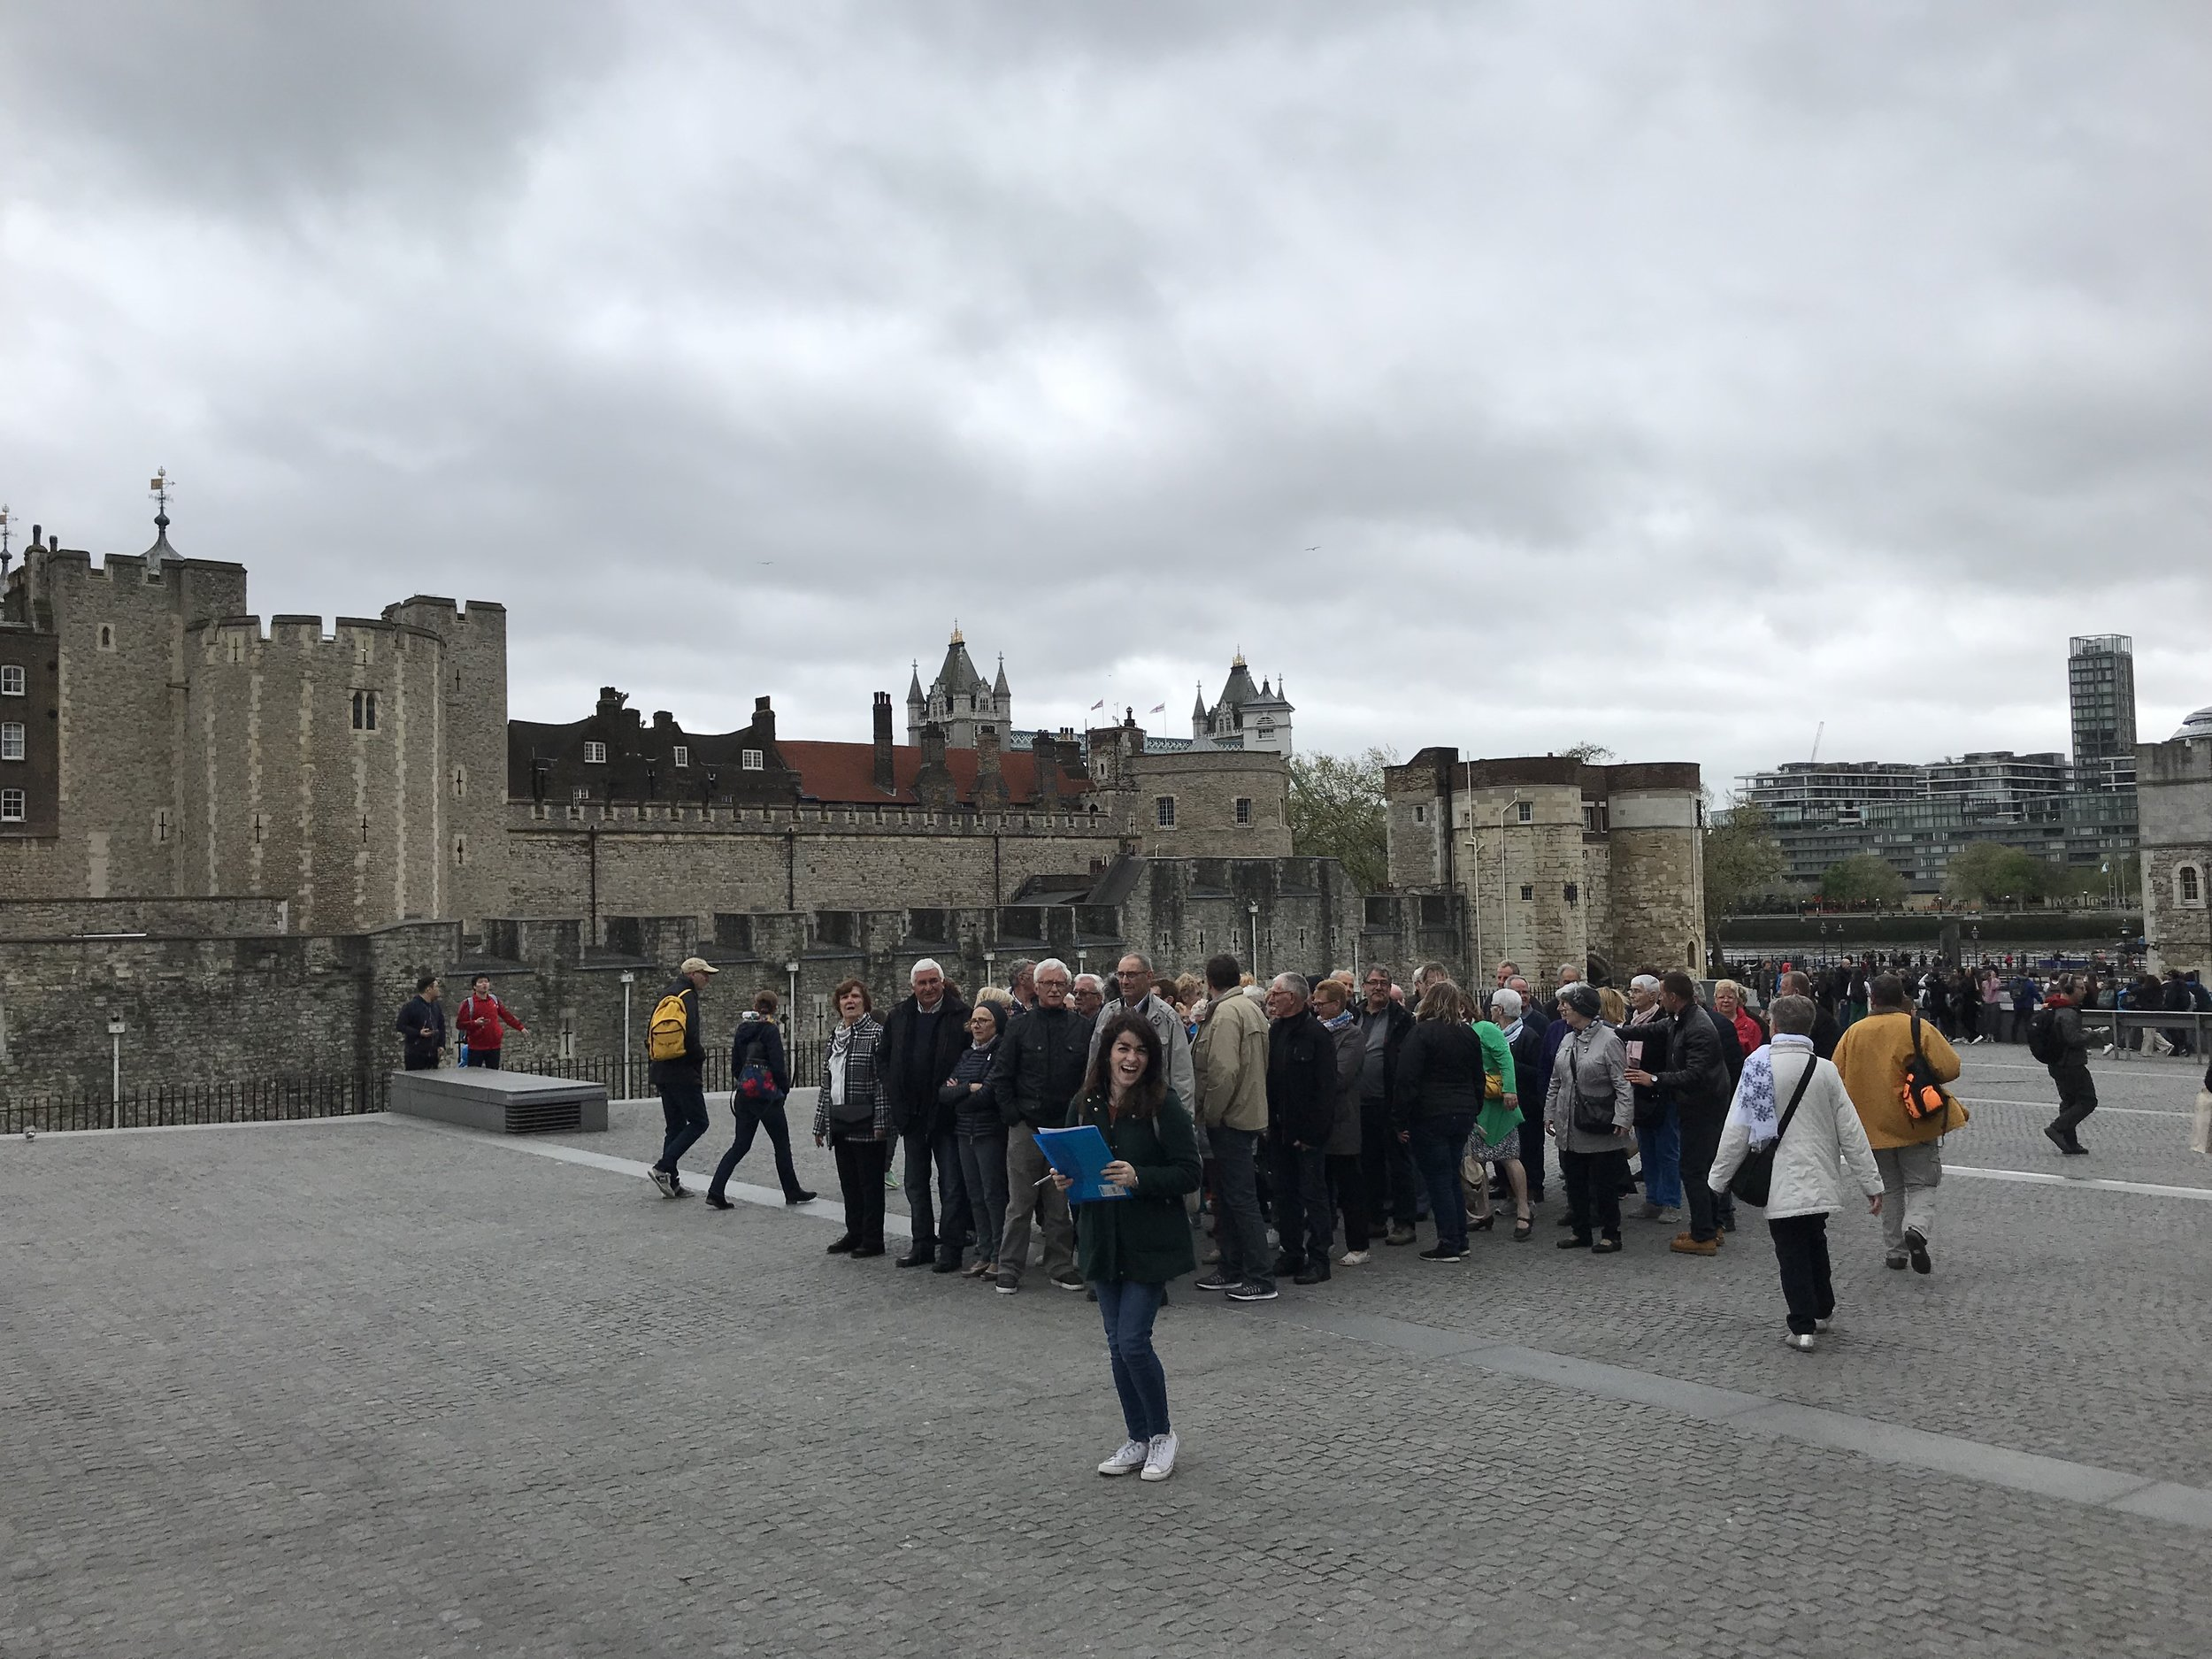 Getting out - At the Tower of London, my colleague Gina and I were able to talk to multiple groups of visitors. I also got a brief history of how group ticket sales had migrated online from the attendant at the group booking window.